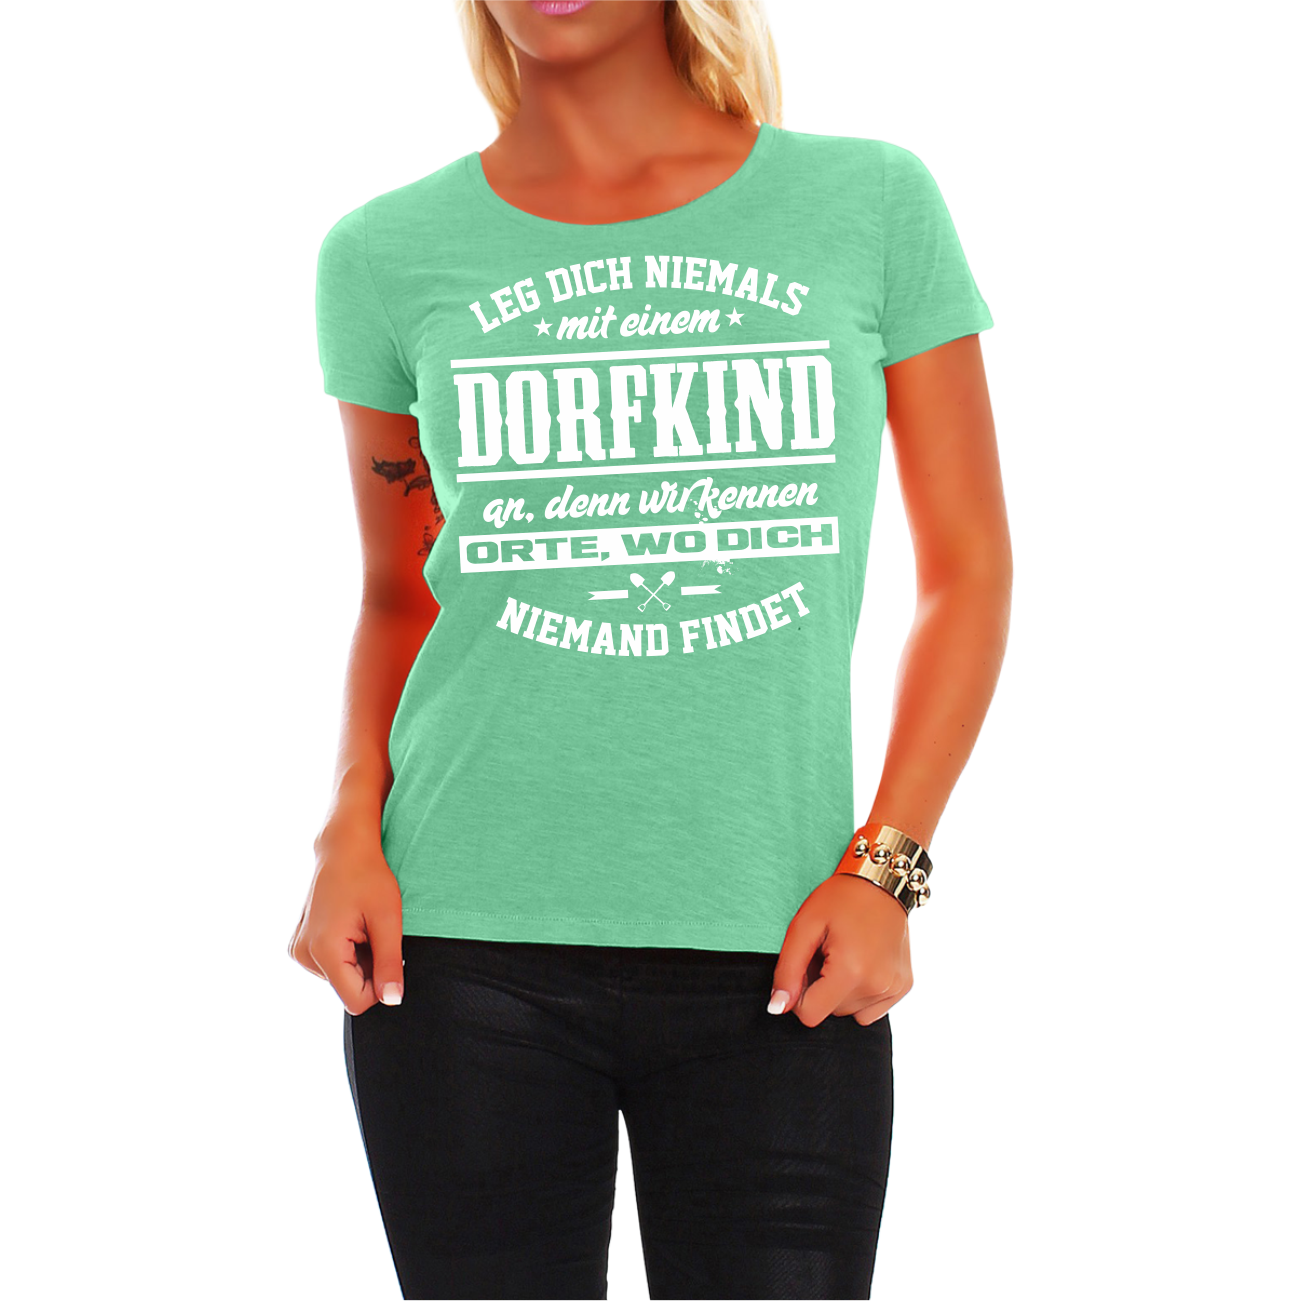 Full Size of Frauen Damen T Shirt Dorfkind Spruch Fun Spa Lustig Witzig Regal Industrie Industrial Esstisch Hotels In Bad Reichenhall Behindertengerechte Küche Wohnzimmer Lustige T Shirt Sprüche